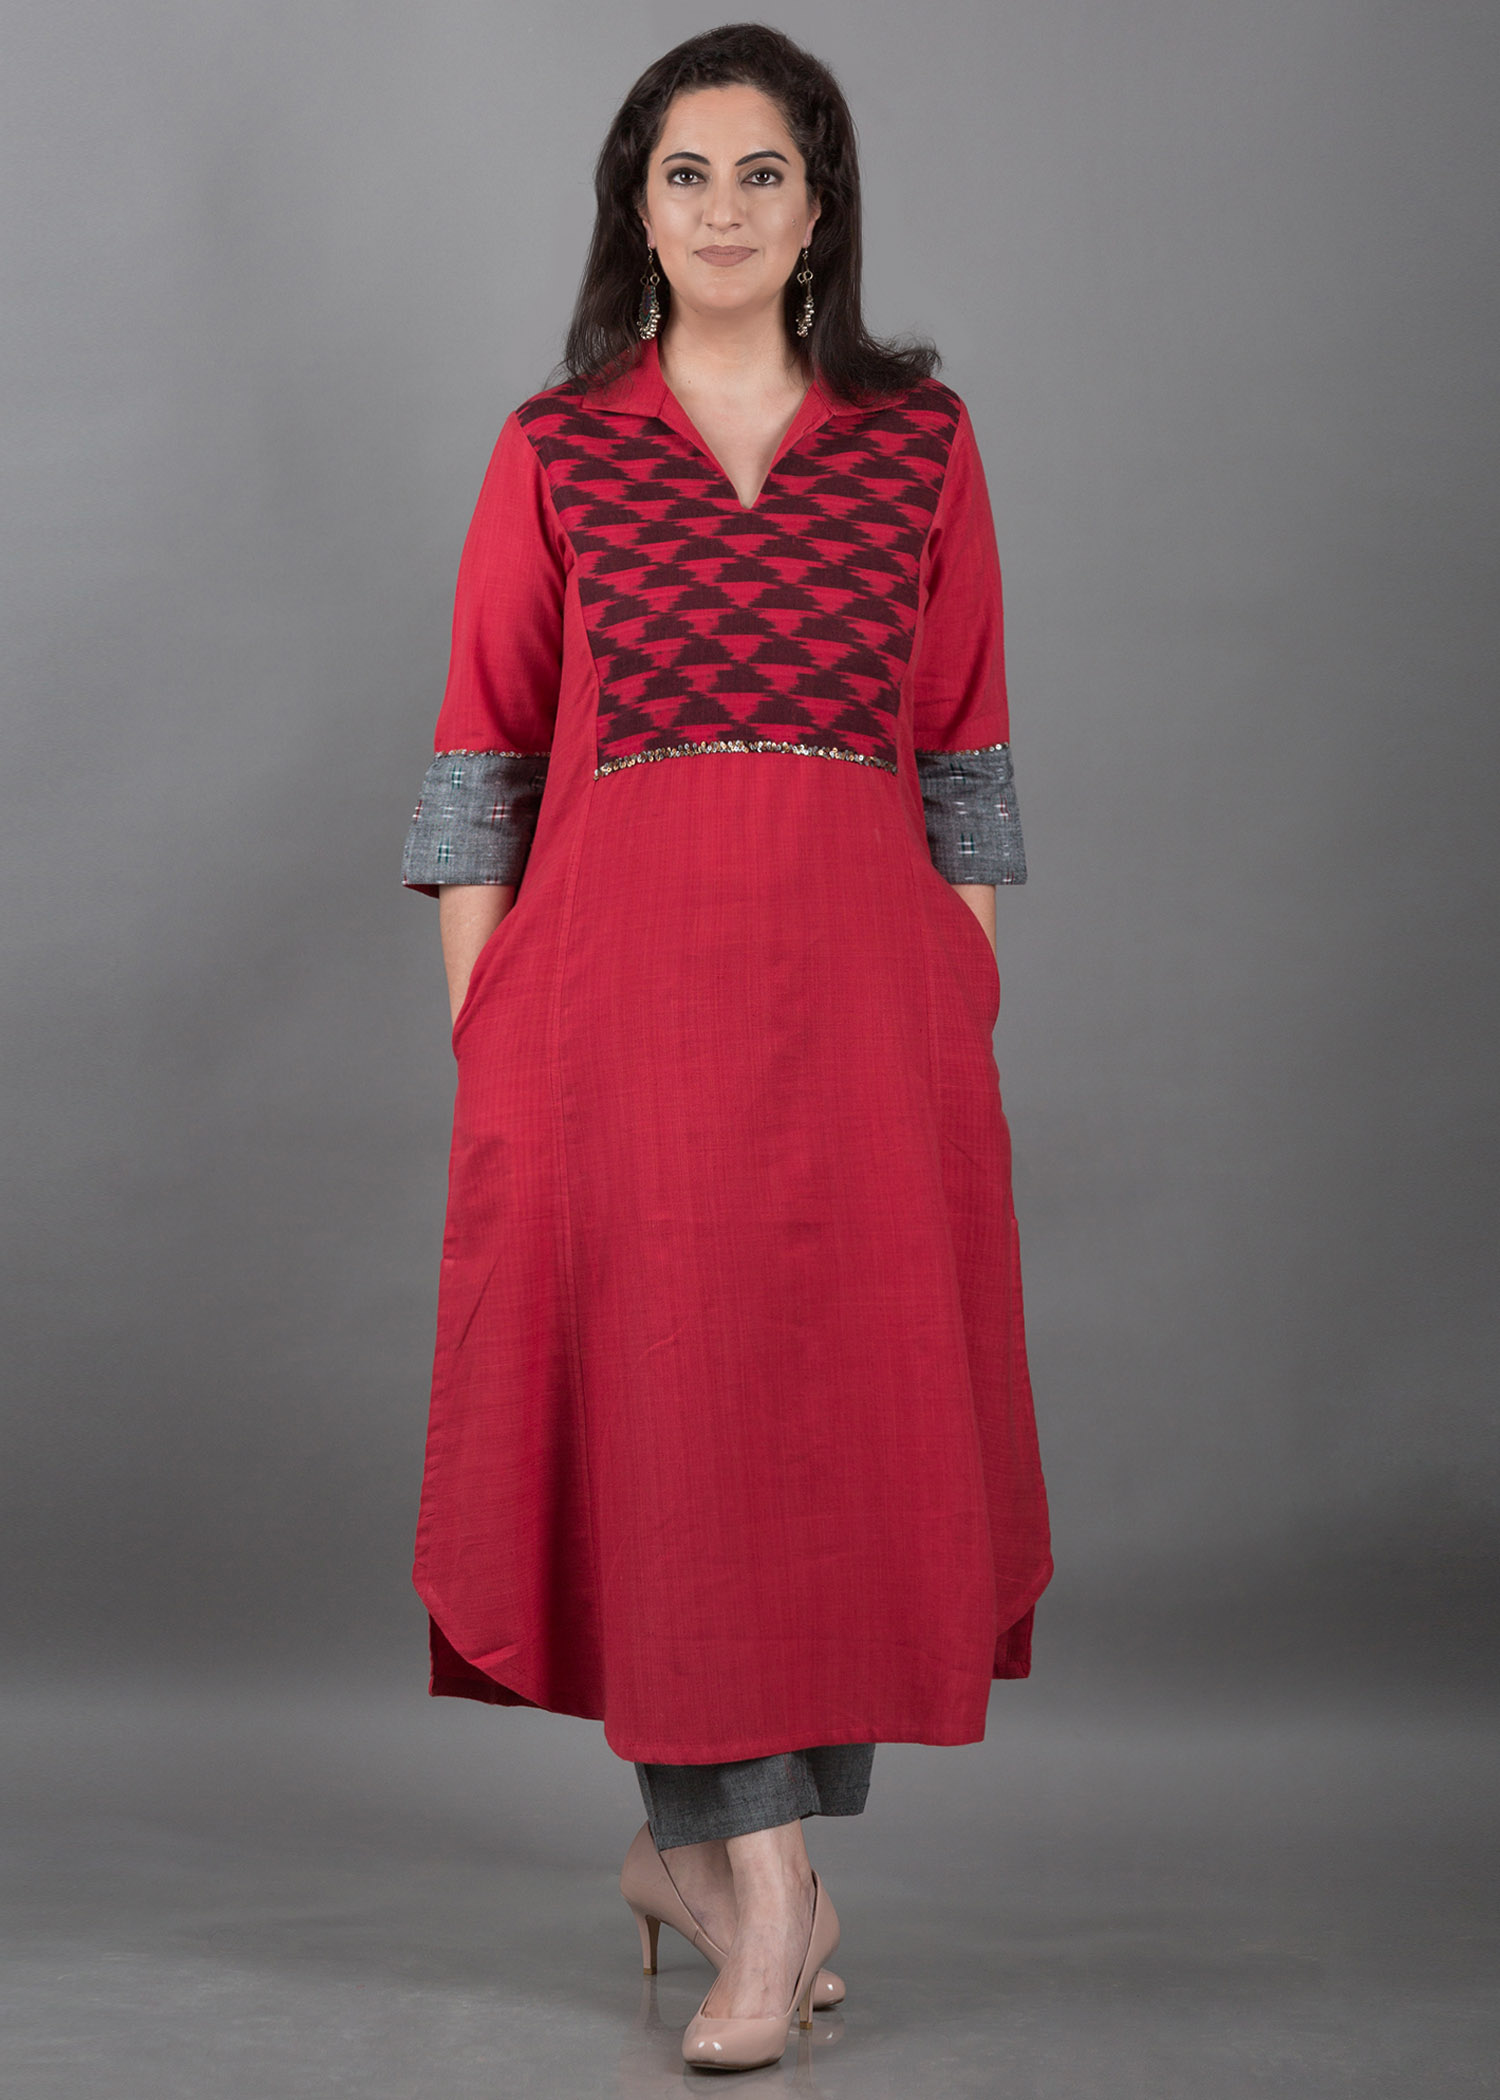 Red Handwoven Cotton Kurta with Red Ikat Yolk and Sequin Detailing